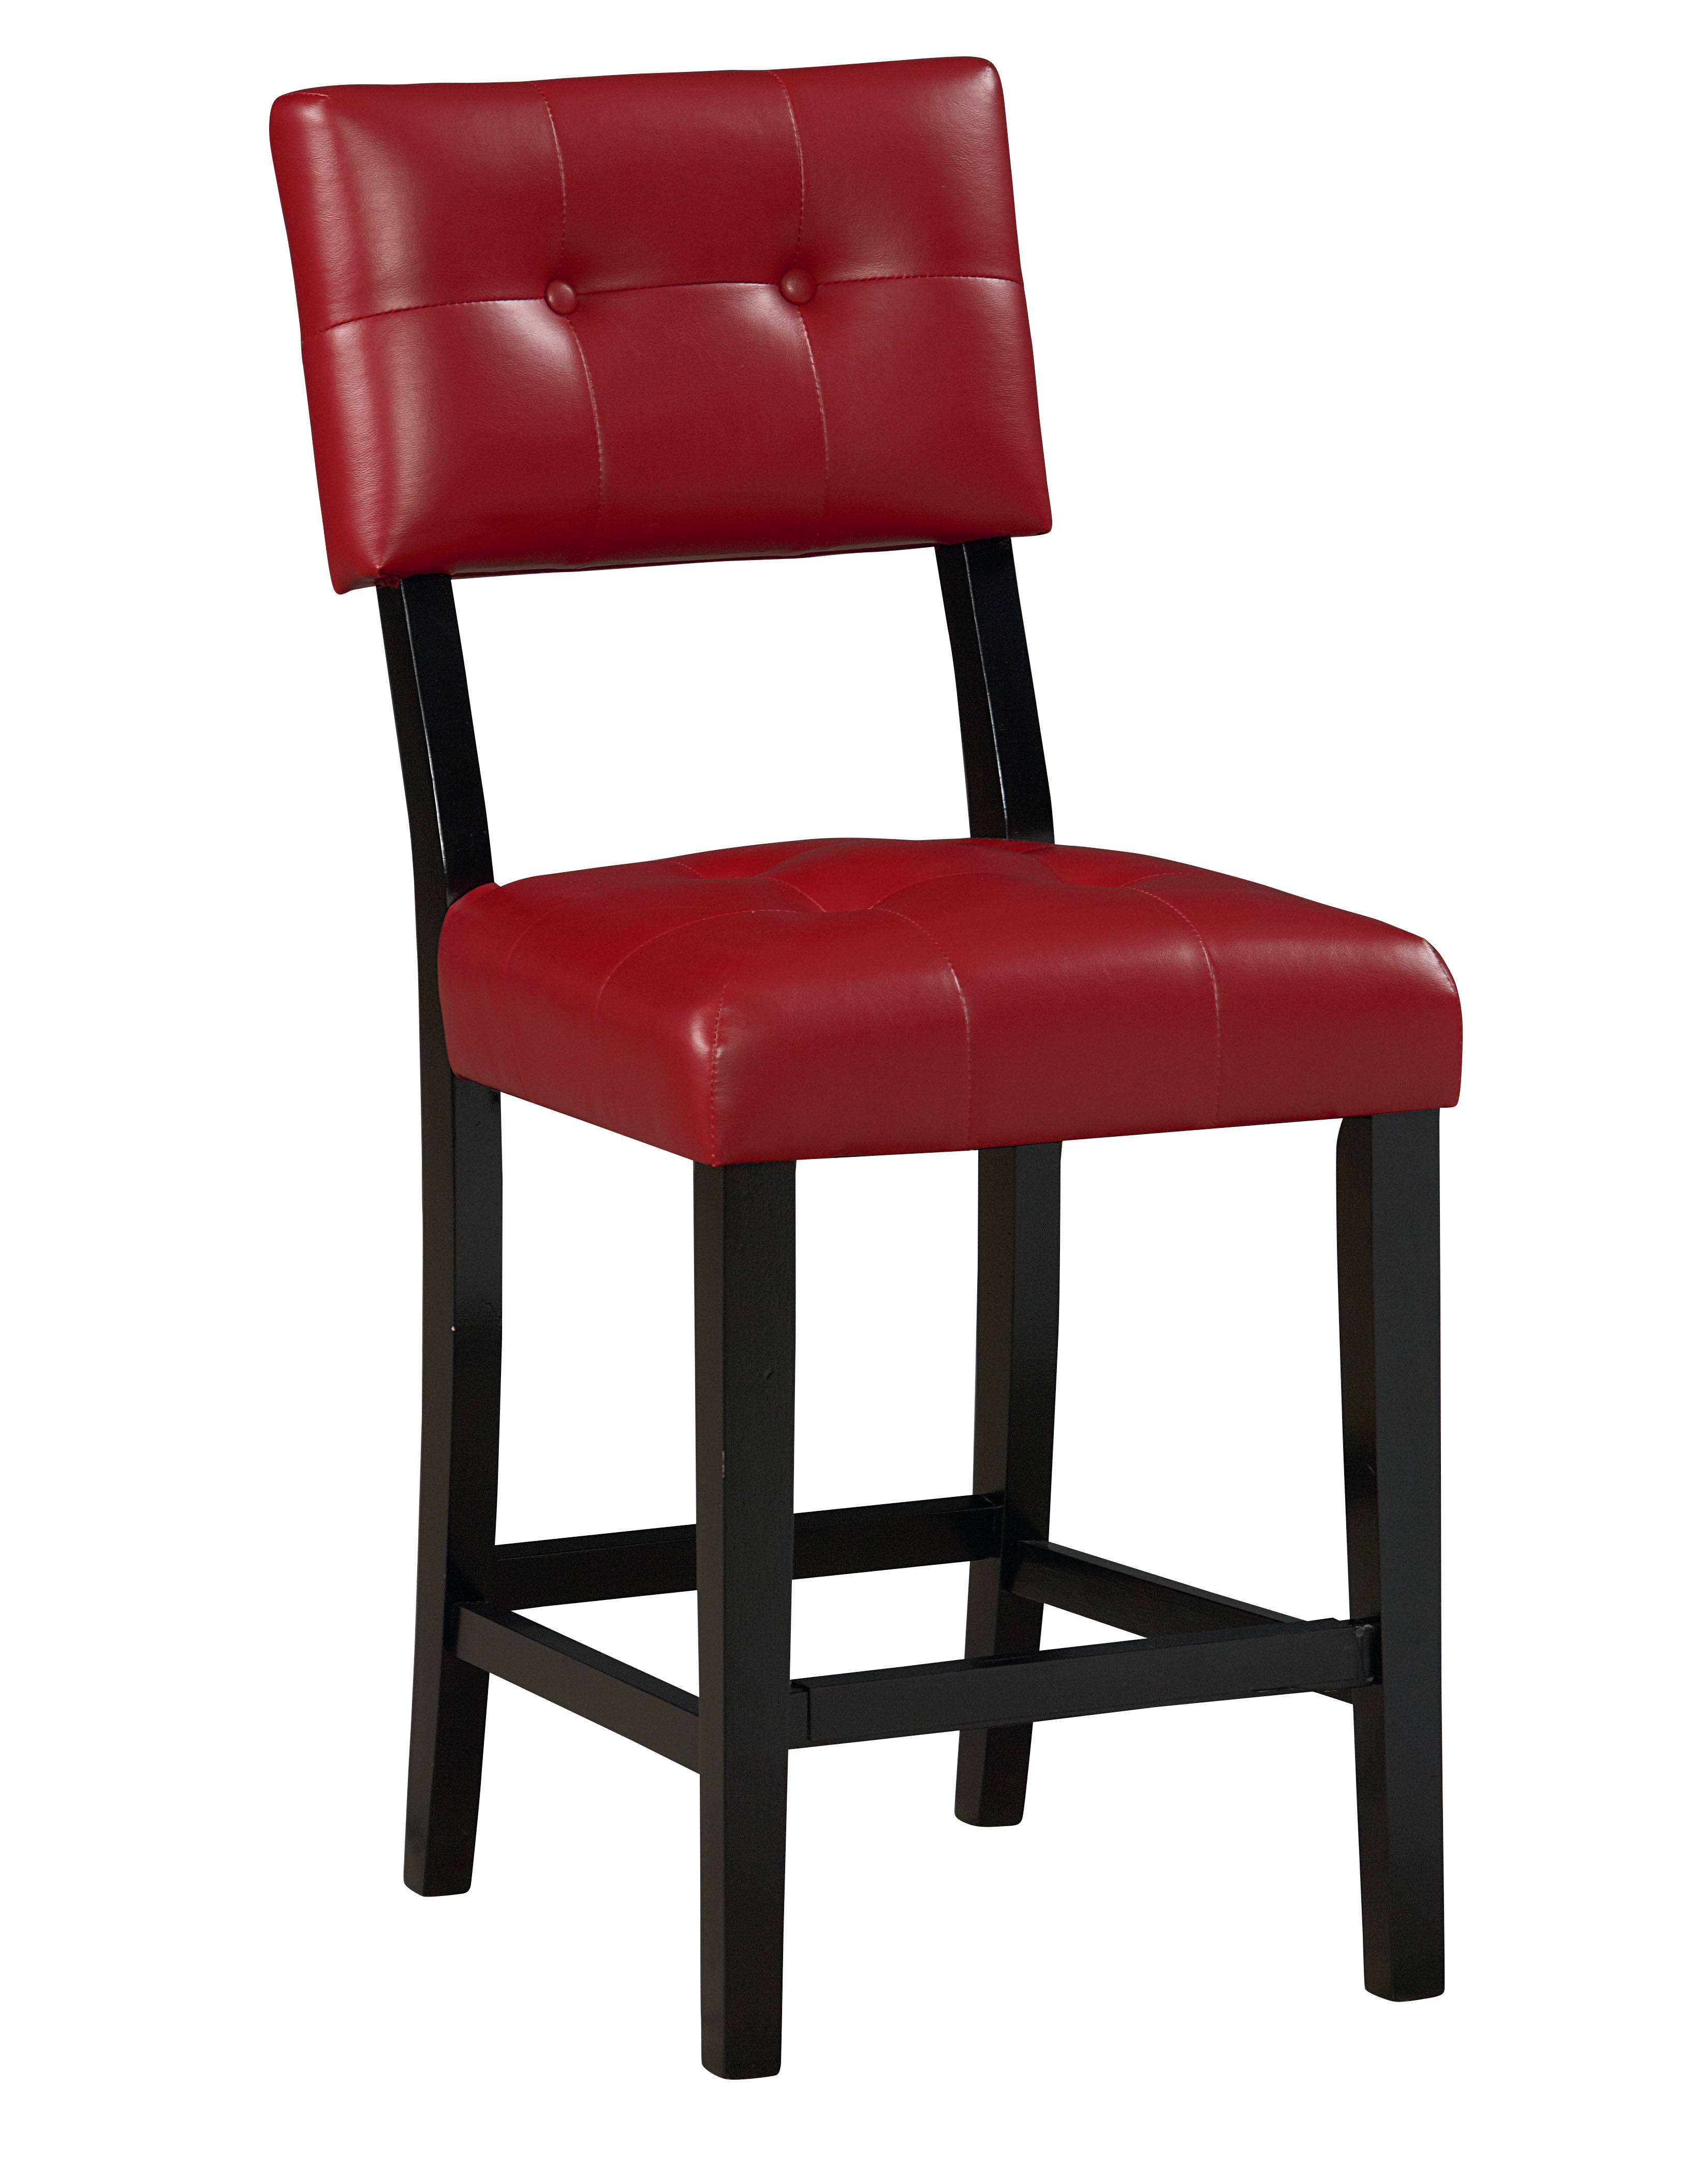 2 Miller Retro Red Pvc Wood Counter Height Stools The